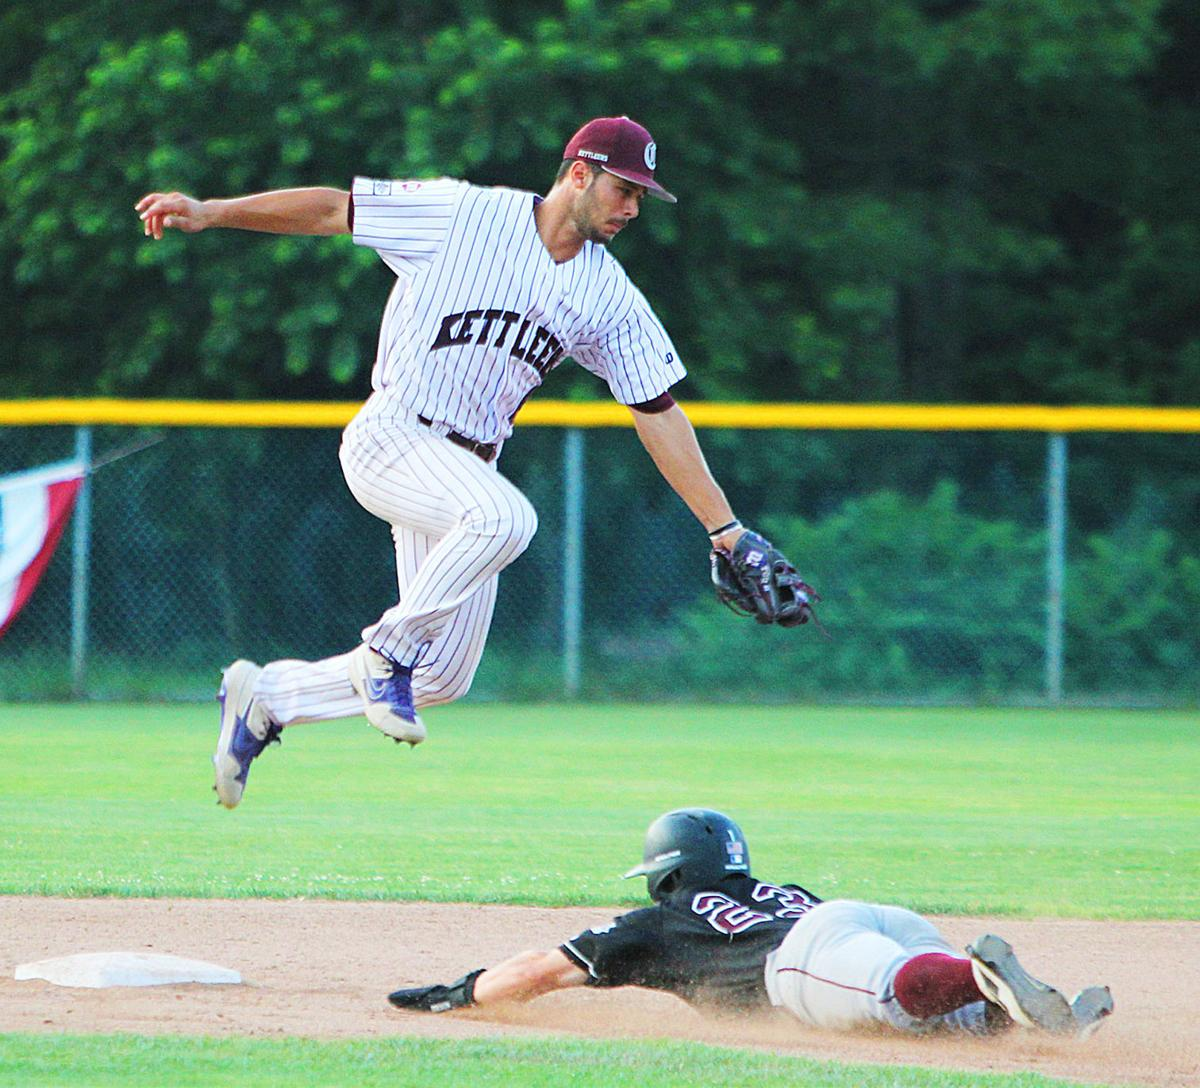 Cotuit Kettleers vs Falmouth - July 30, 2019